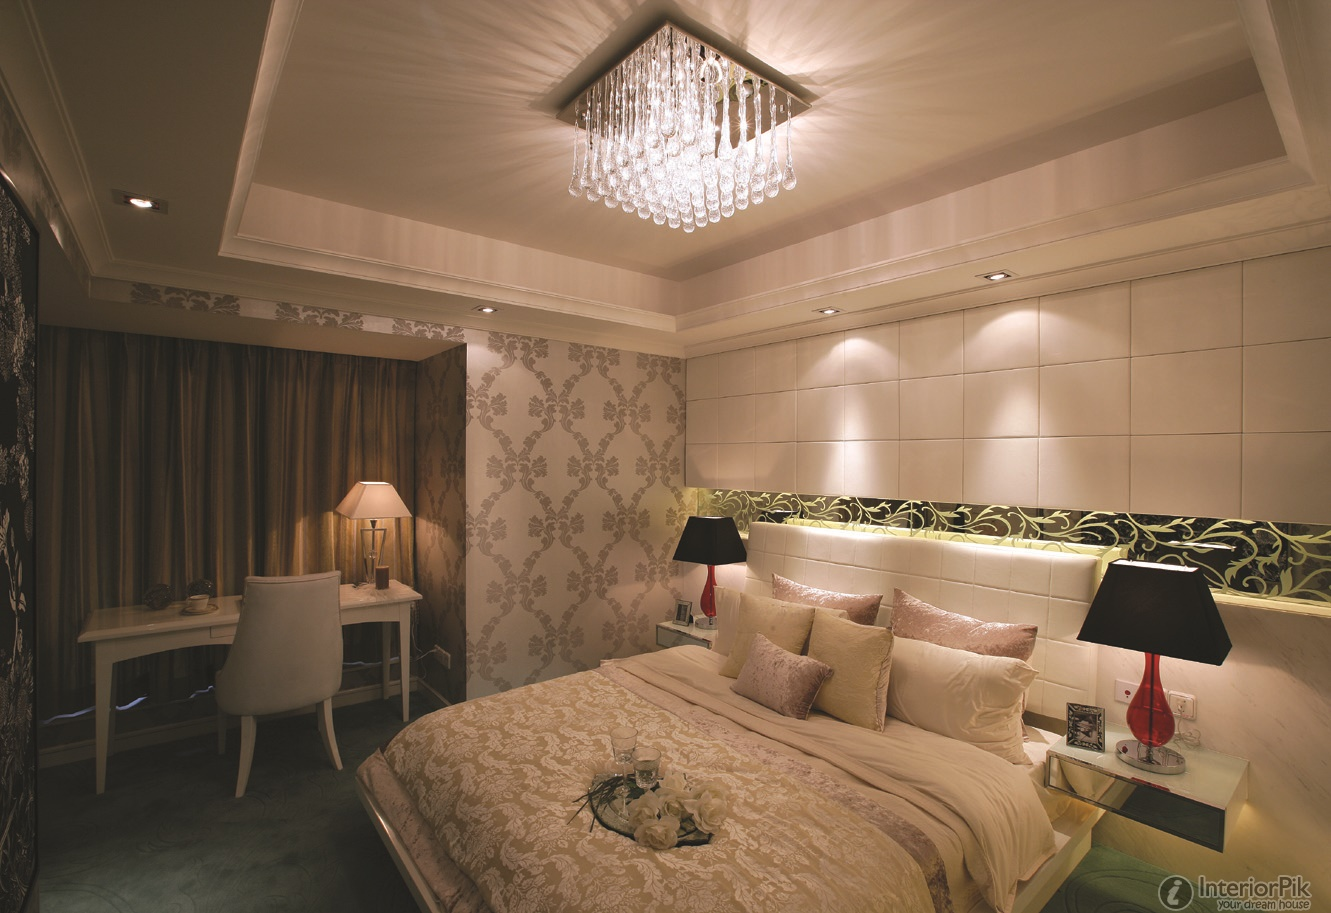 Bedroom Light Fixtures Bedroom Delightful Bedroom Lighting – Modern Bedroom Light Fixtures